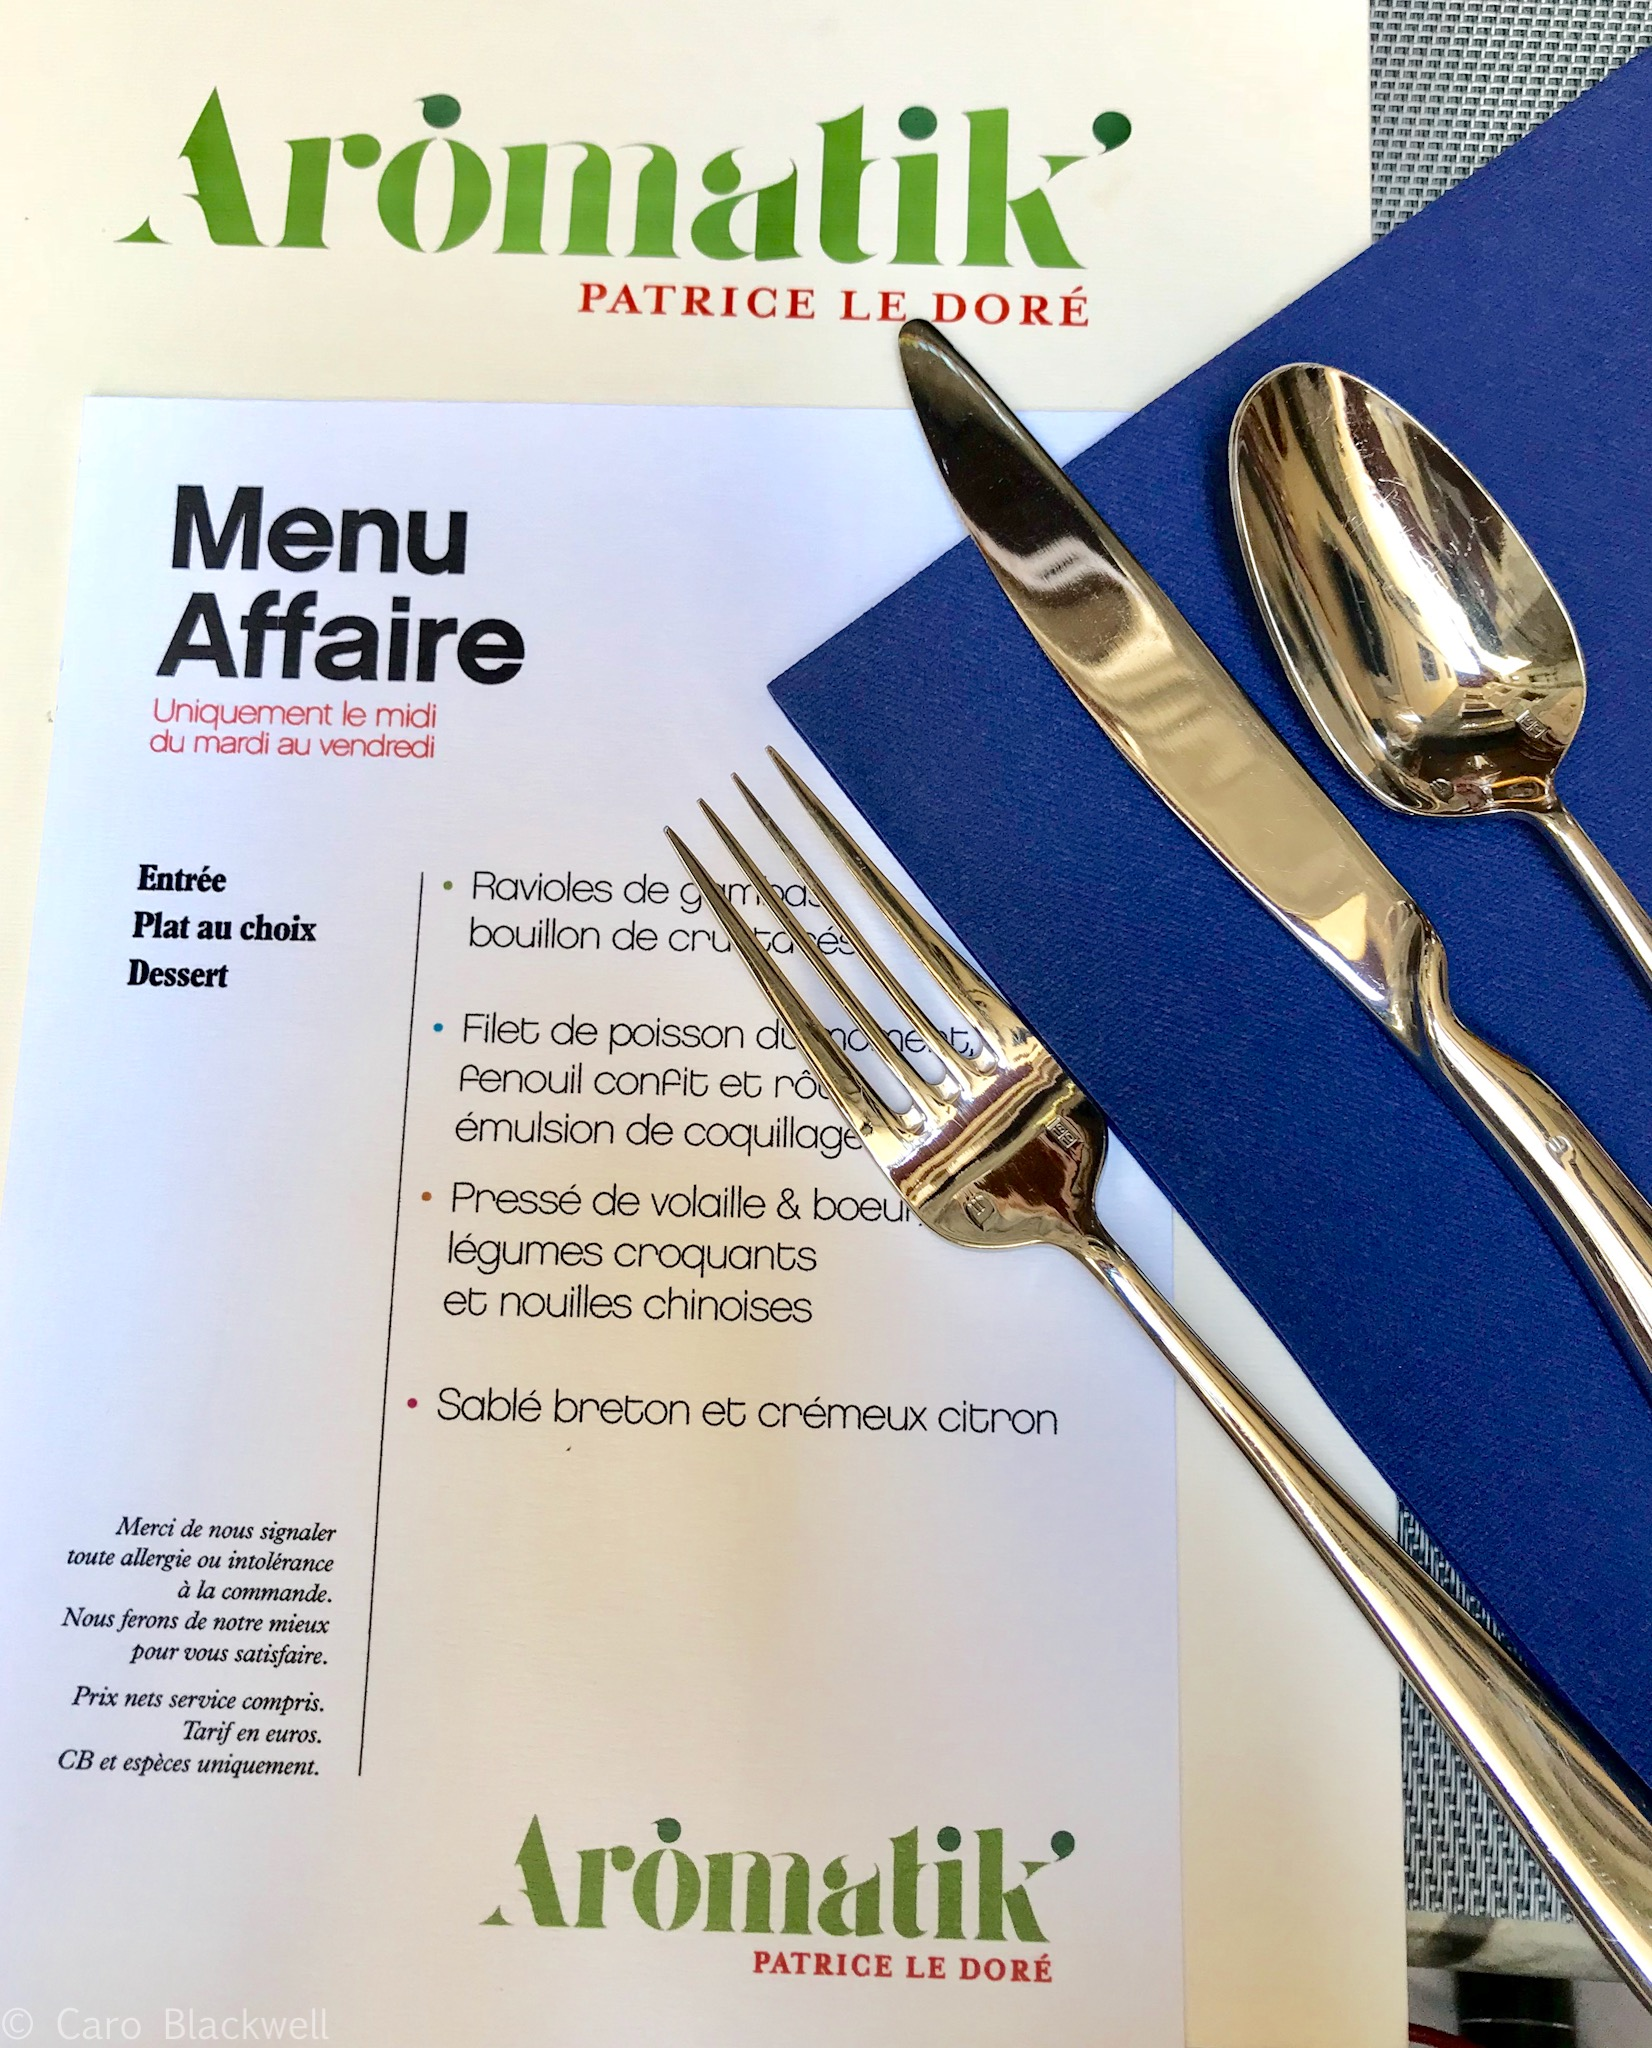 Menu Affaire at Aromatik Restaurant Annecy